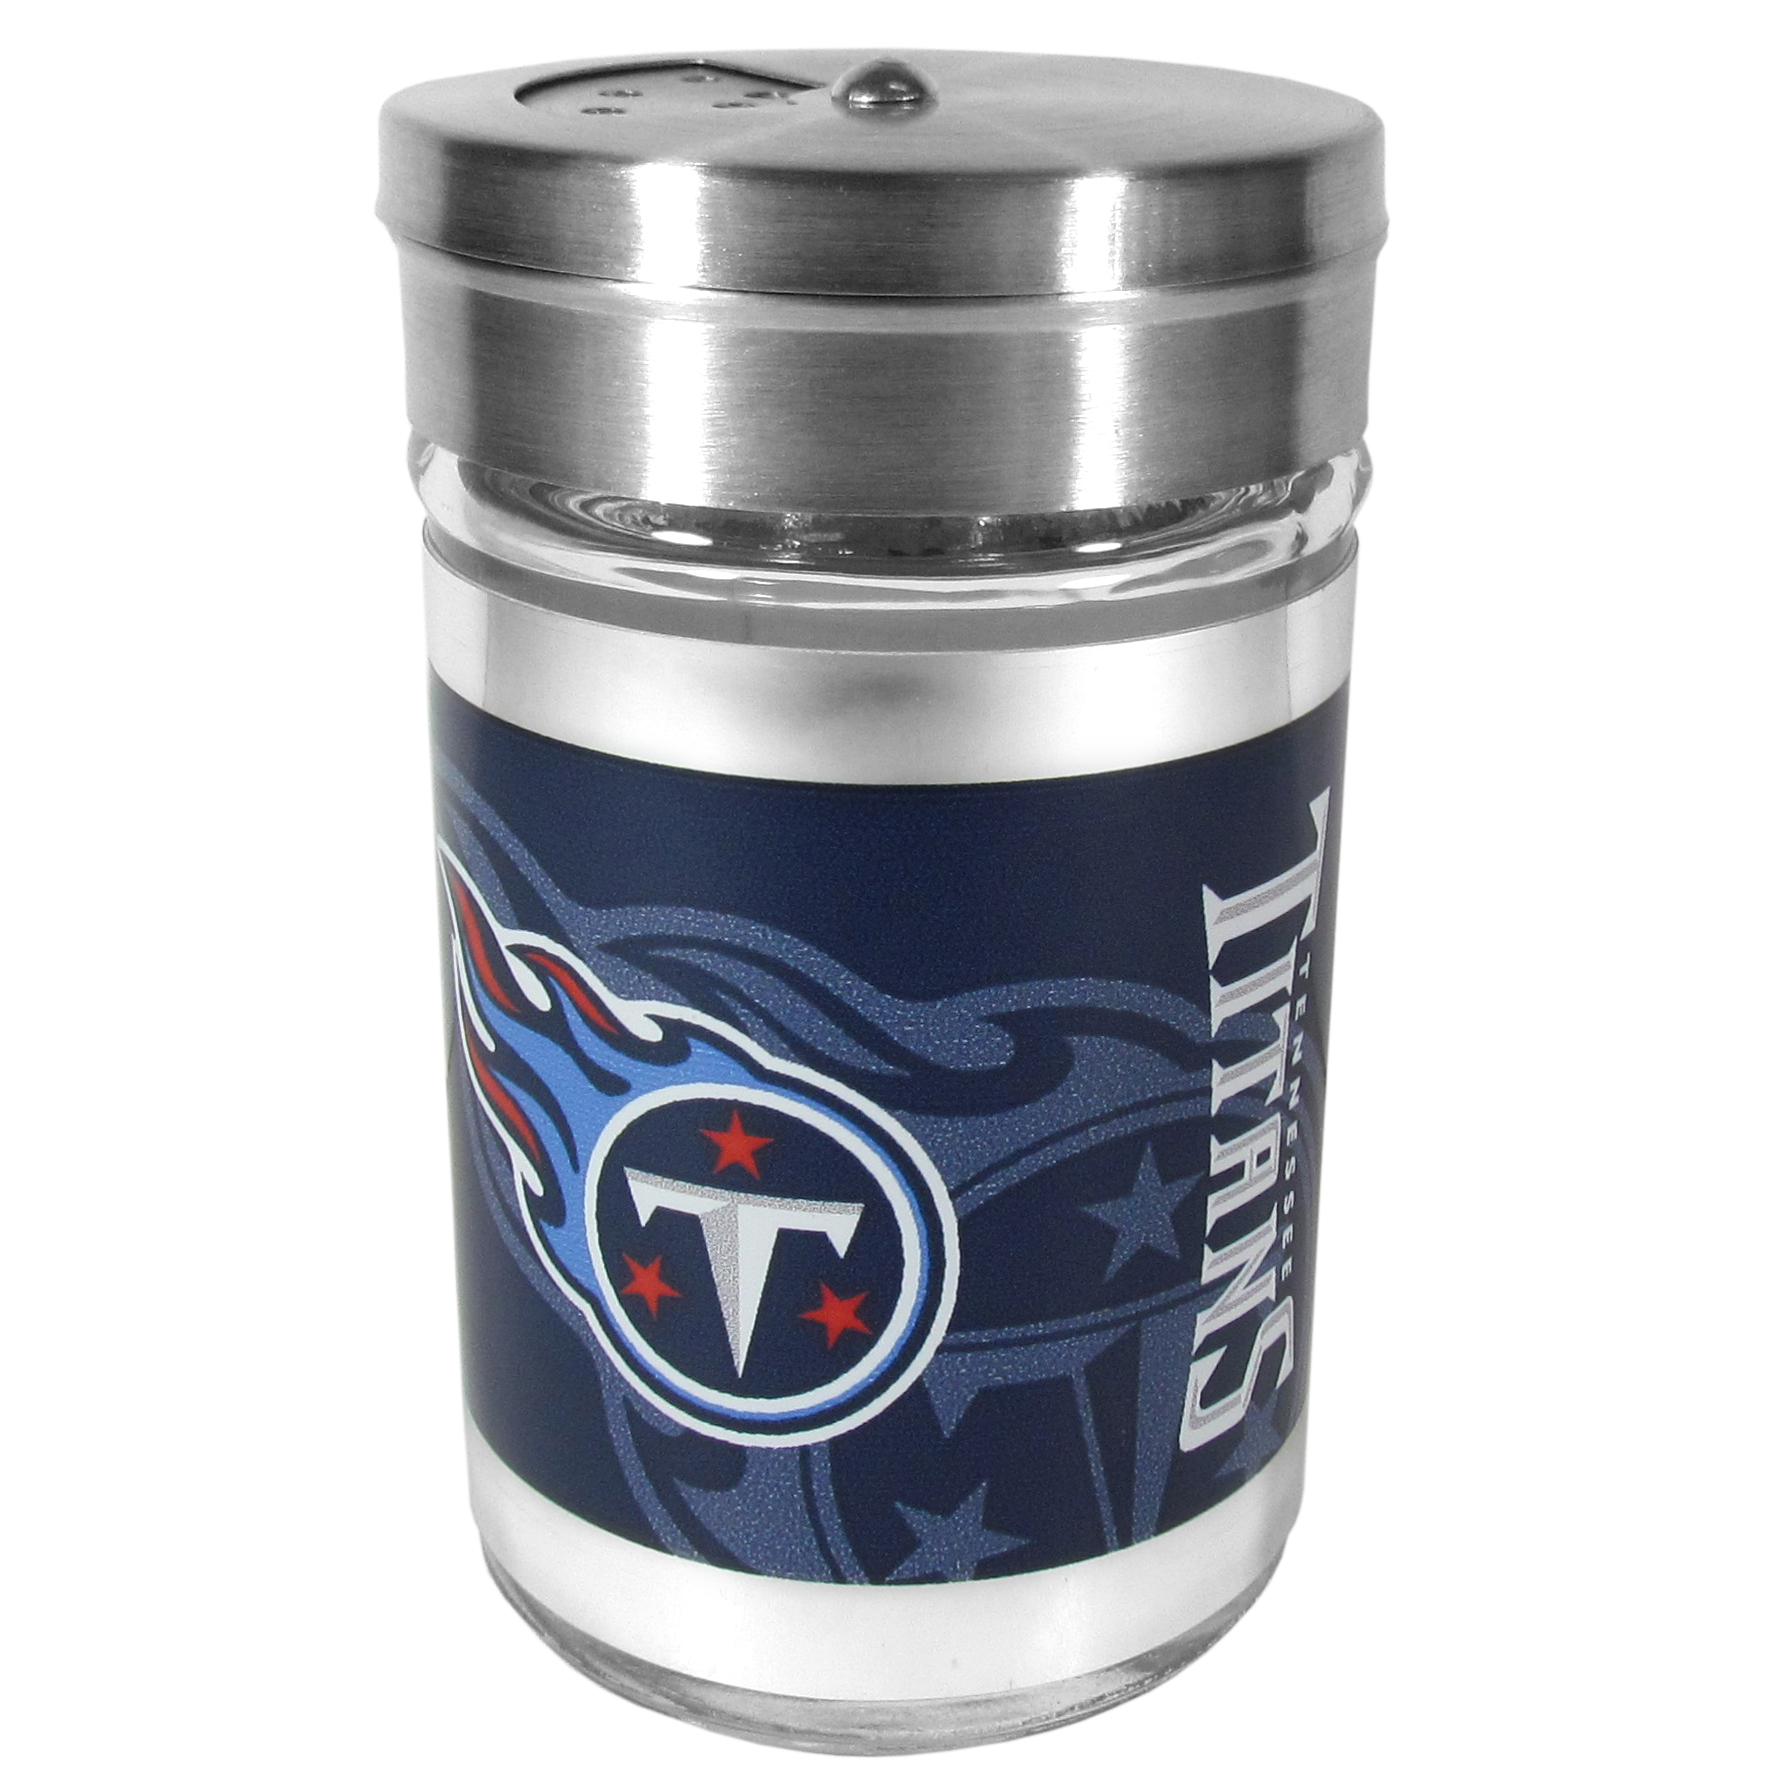 Tennessee Titans Tailgater Season Shakers - Spice it up with our Tennessee Titans tailgater season shakers! This compact shaker is 2 inch tall with a twist top that closes off the holes at the top making it perfect for travel preventing those messy spills. The shaker has wide holes perfect for keeping your pepper seeds or cheese toppings. The bright team graphics will make you the envy of the other fans while you are grilling up your tailgating goodies.